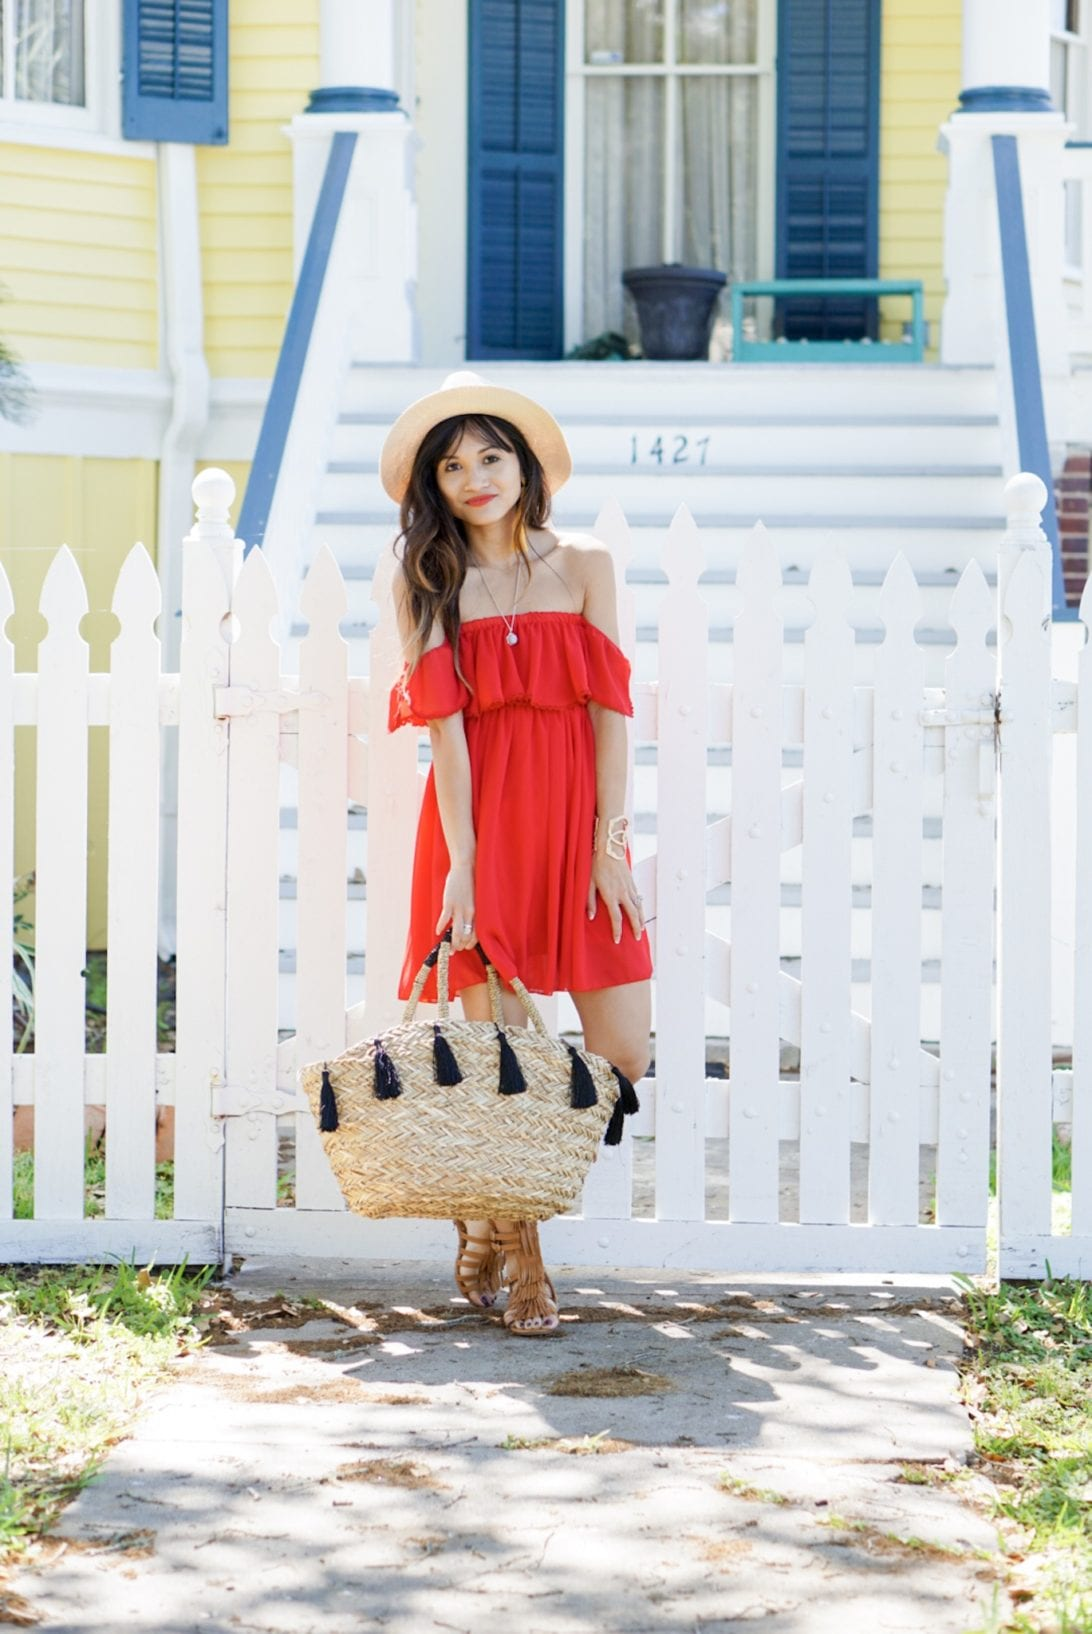 galveston, white picket fence, red beach dress, summer look, summer outfit